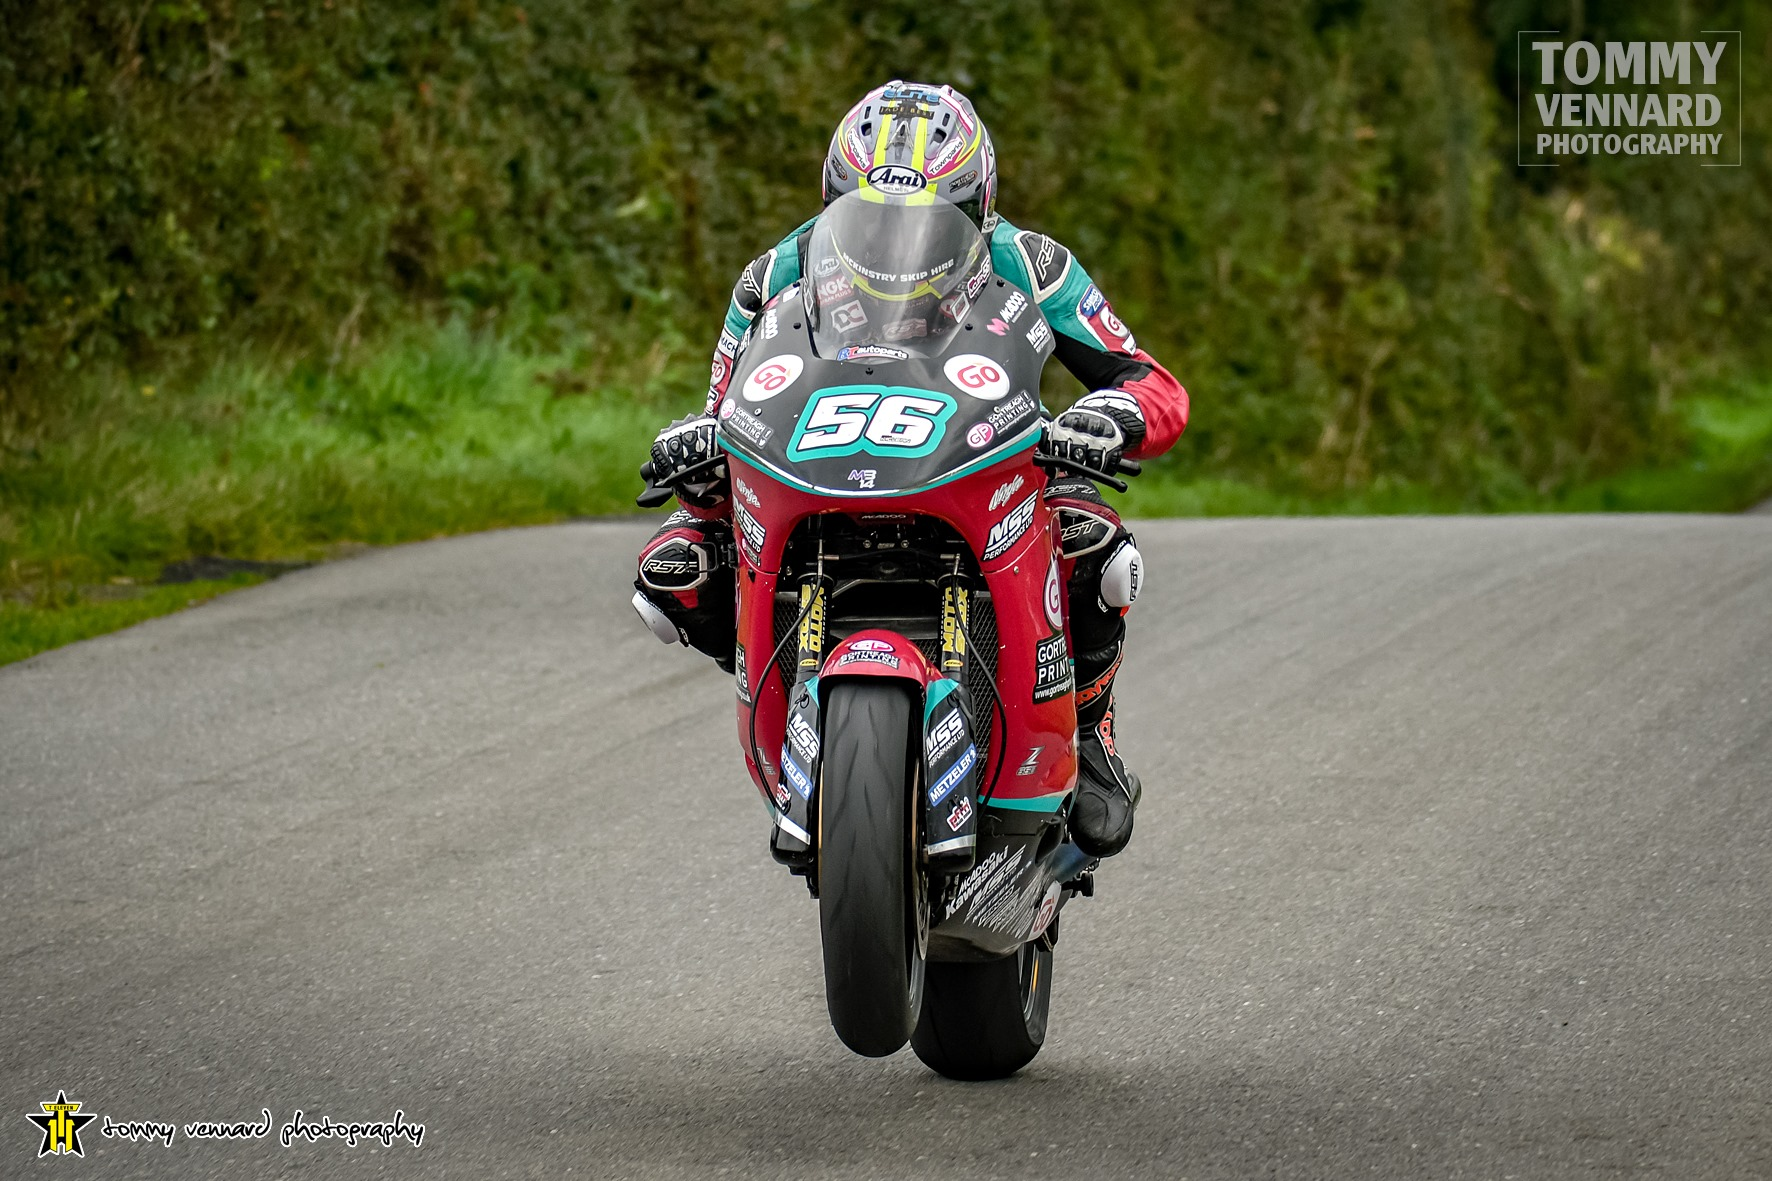 KDM Hire Cookstown 100: Race Day Wrap Up